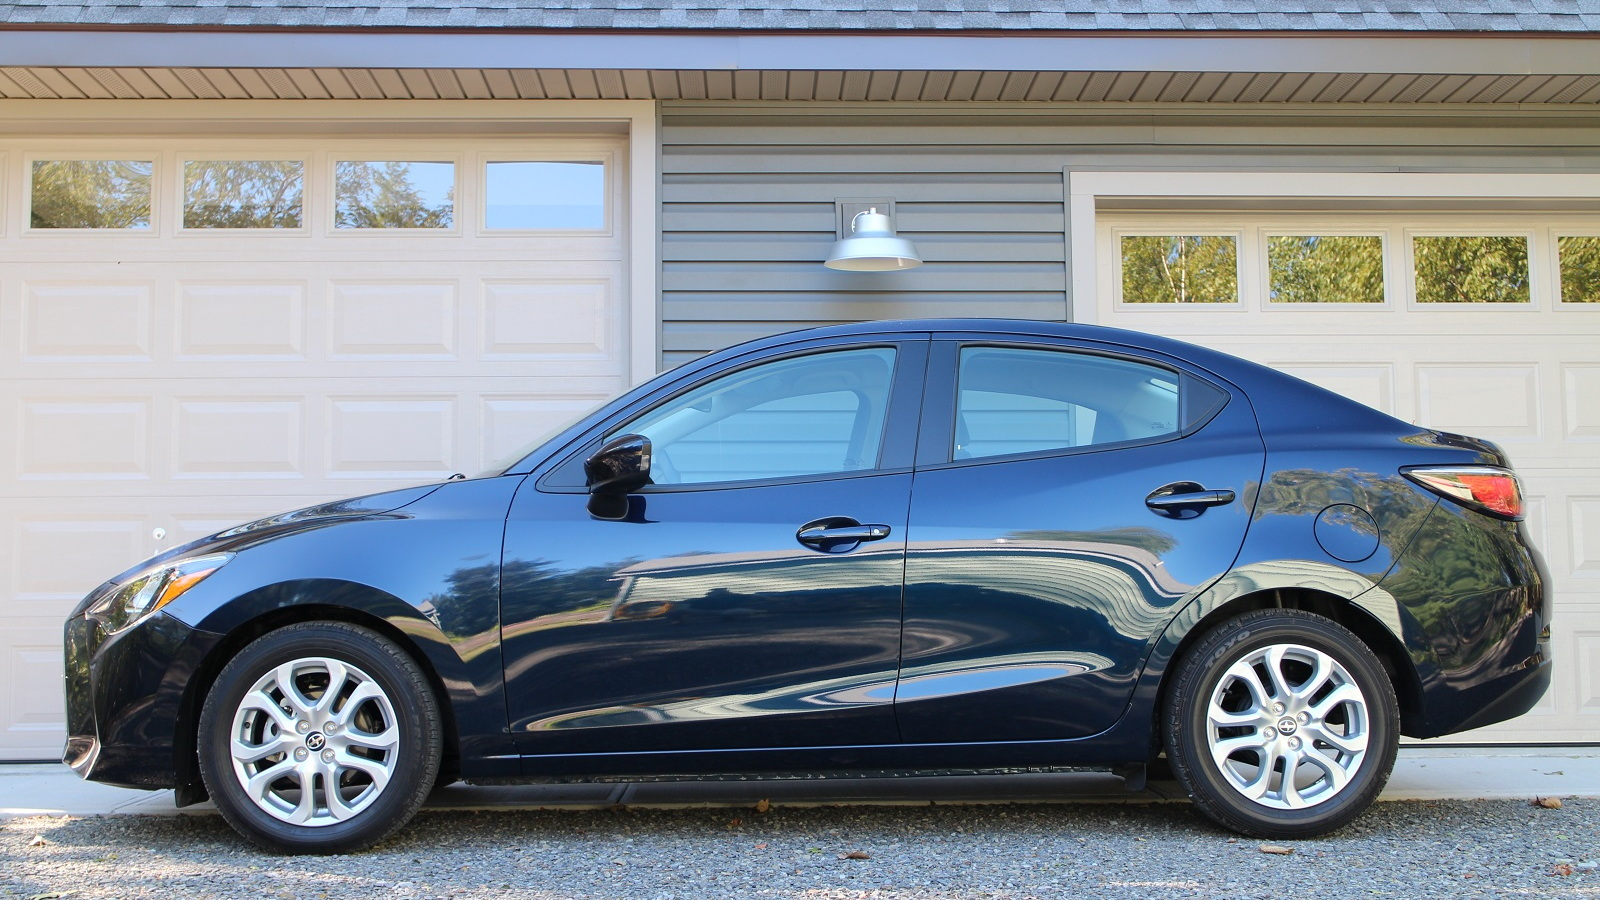 2016 Scion iA, upstate New York, Sept 2015